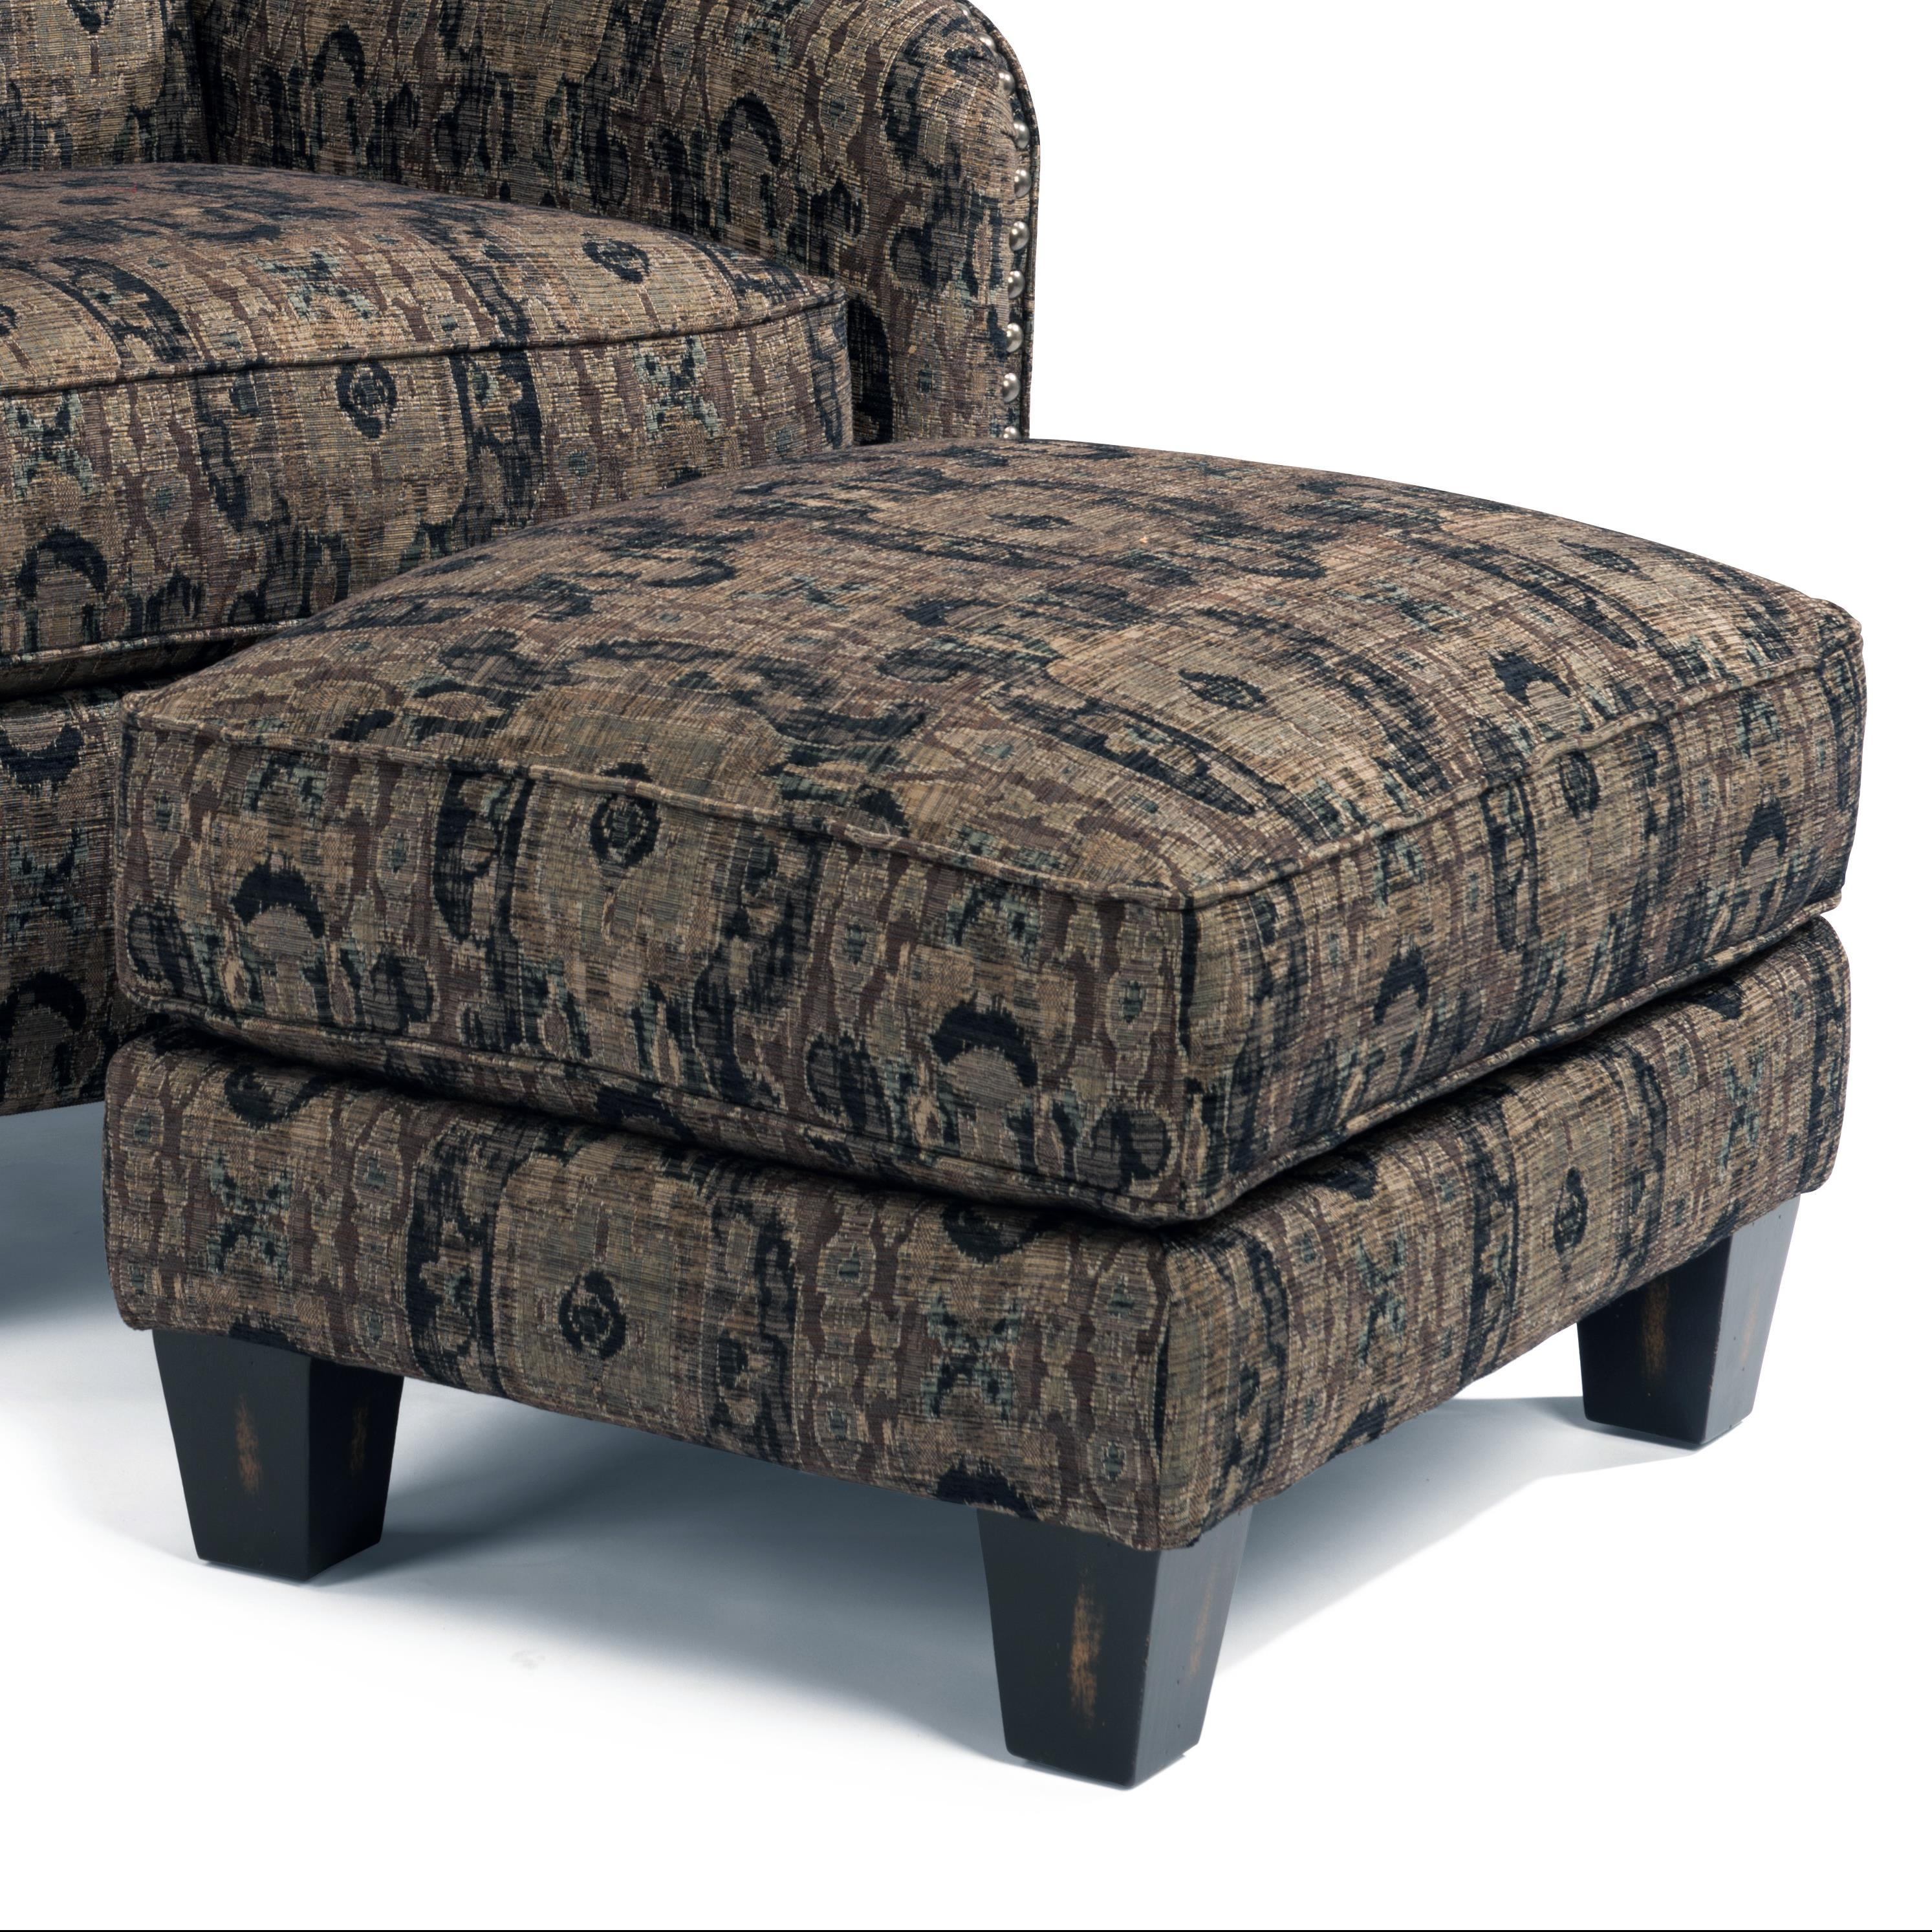 Flexsteel Accents Perth Ottoman - Item Number: 0112-08-964-02